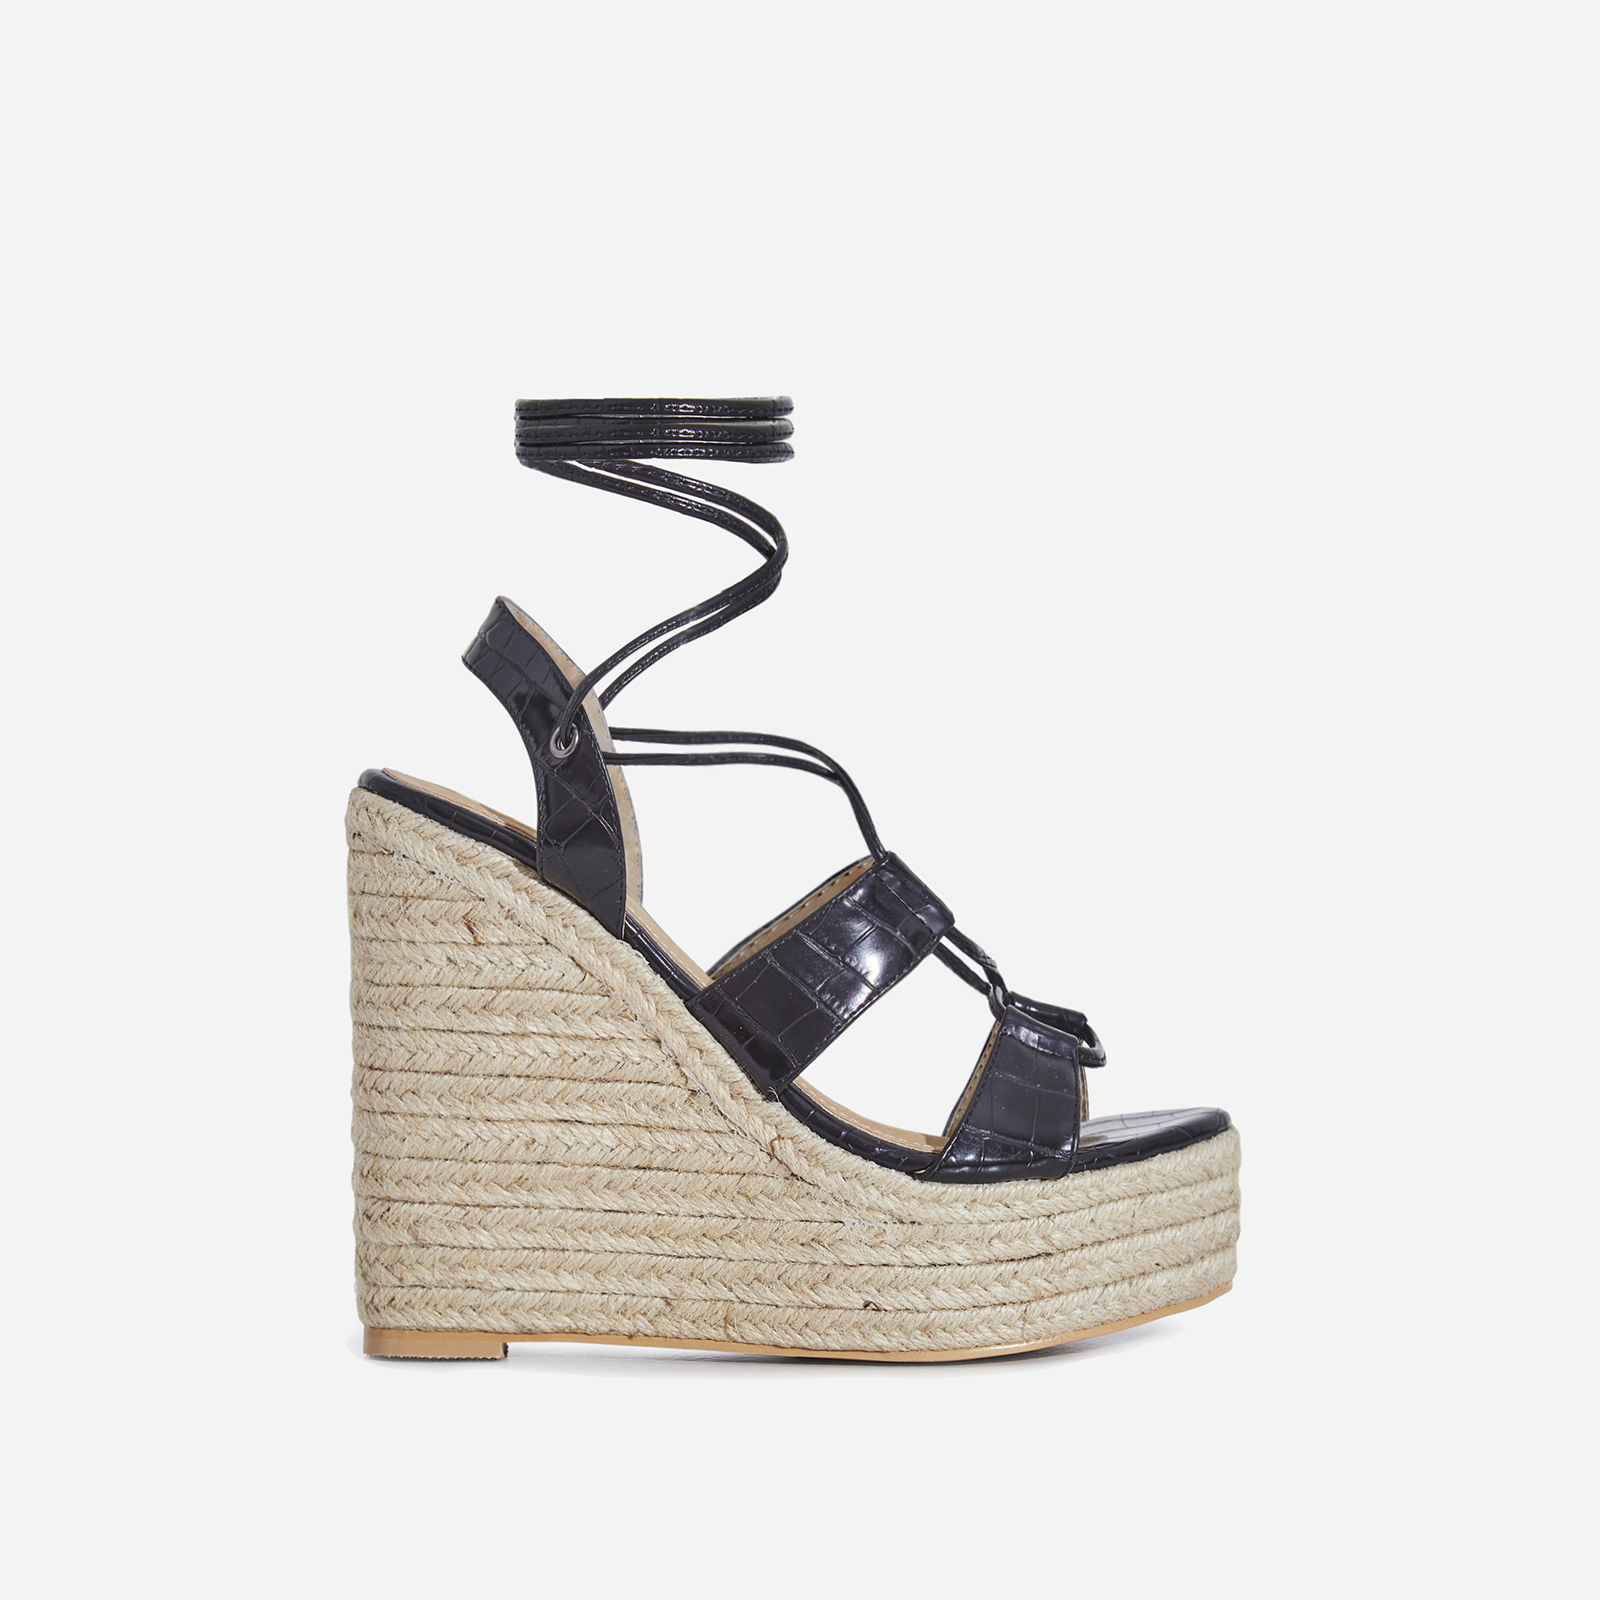 Emelia Lace Up Espadrille Wedge Platform Heel In Black Croc Print Faux Leather